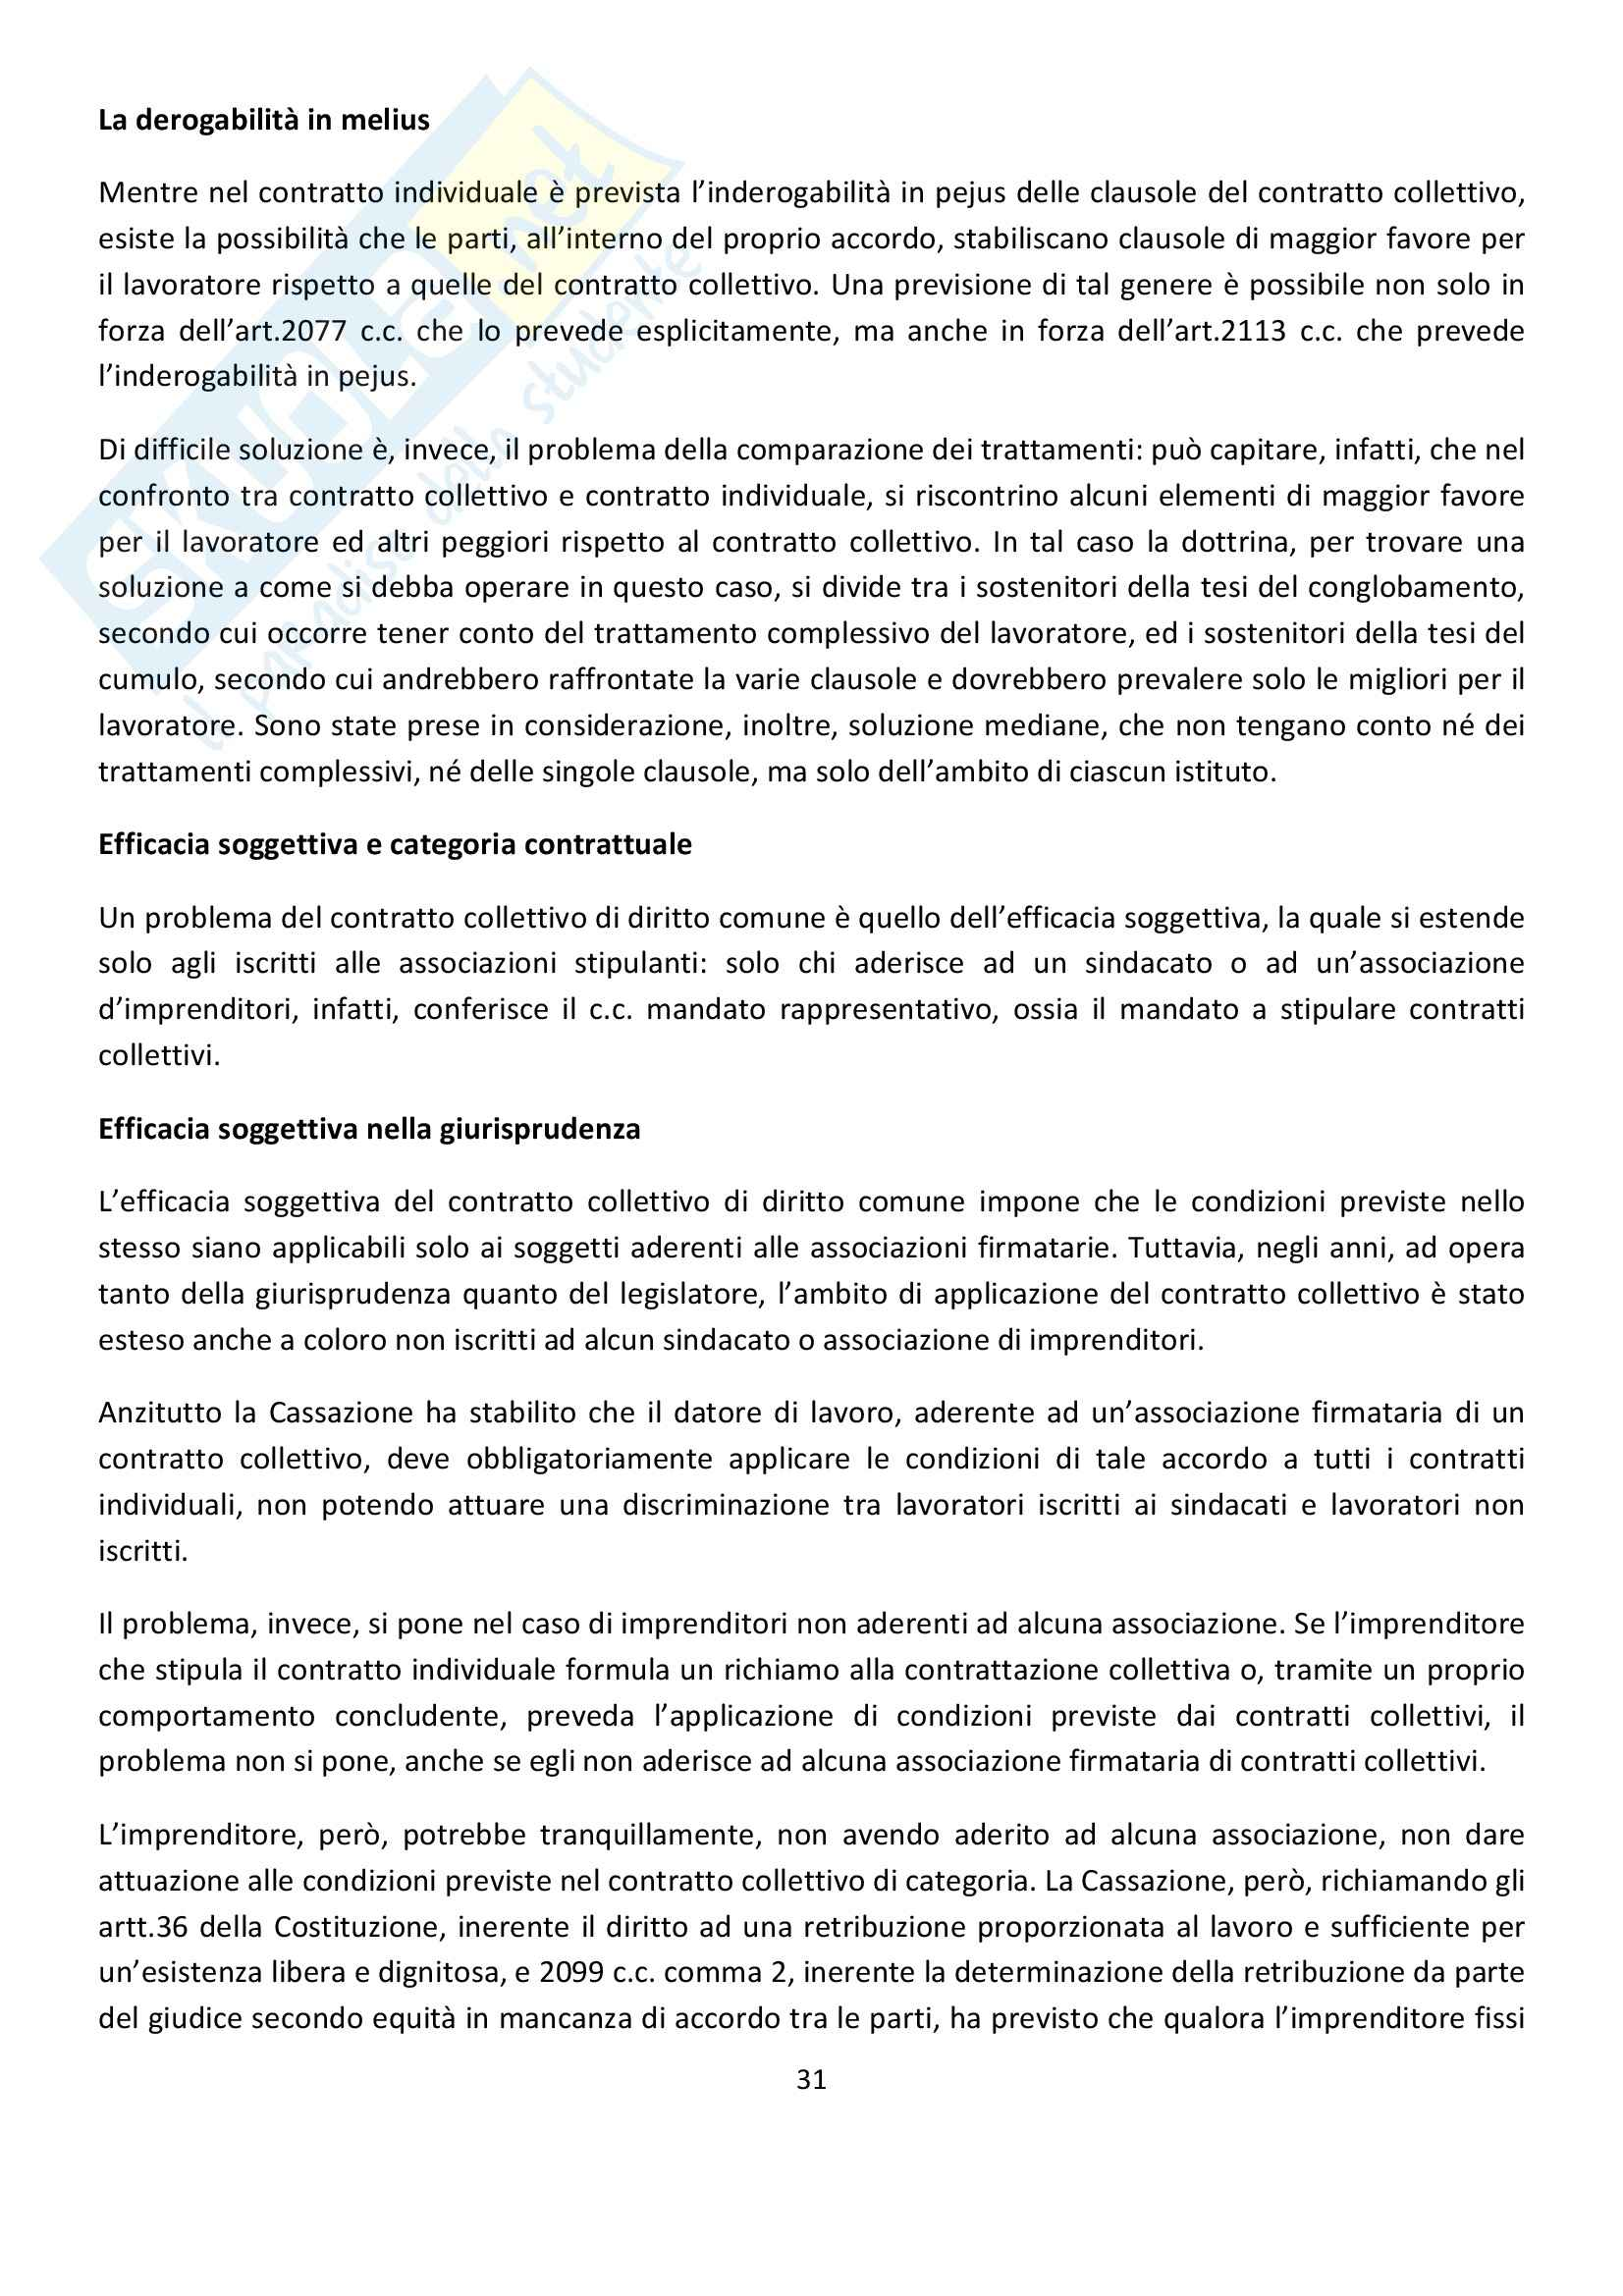 Diritto Sindacale Pag. 31